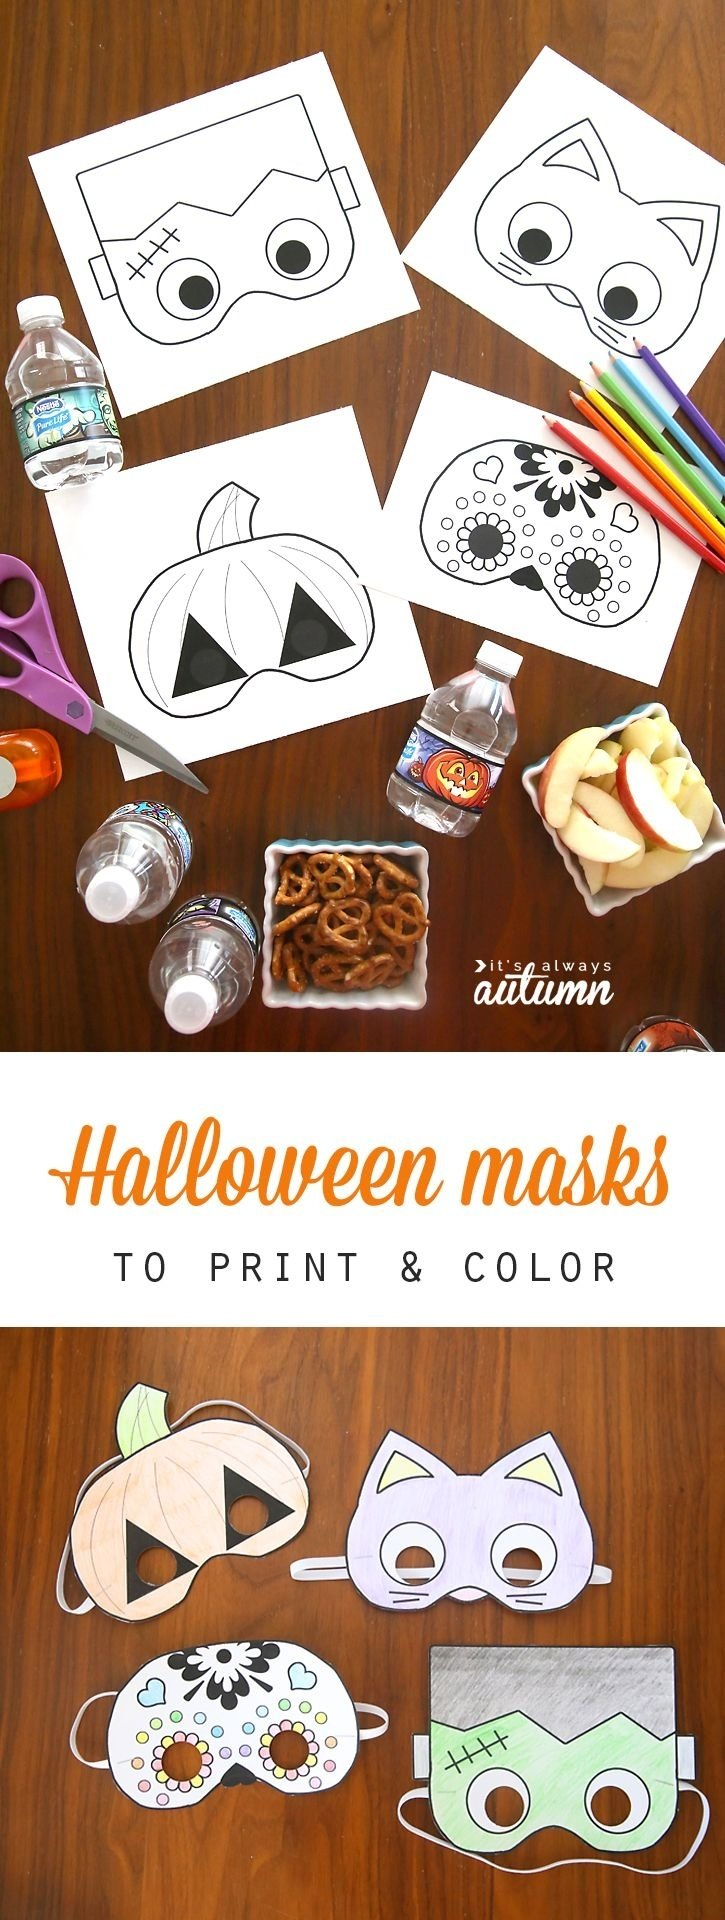 10 Wonderful Fun Halloween Ideas For Kids 396 best halloween images on pinterest activities for children 2020